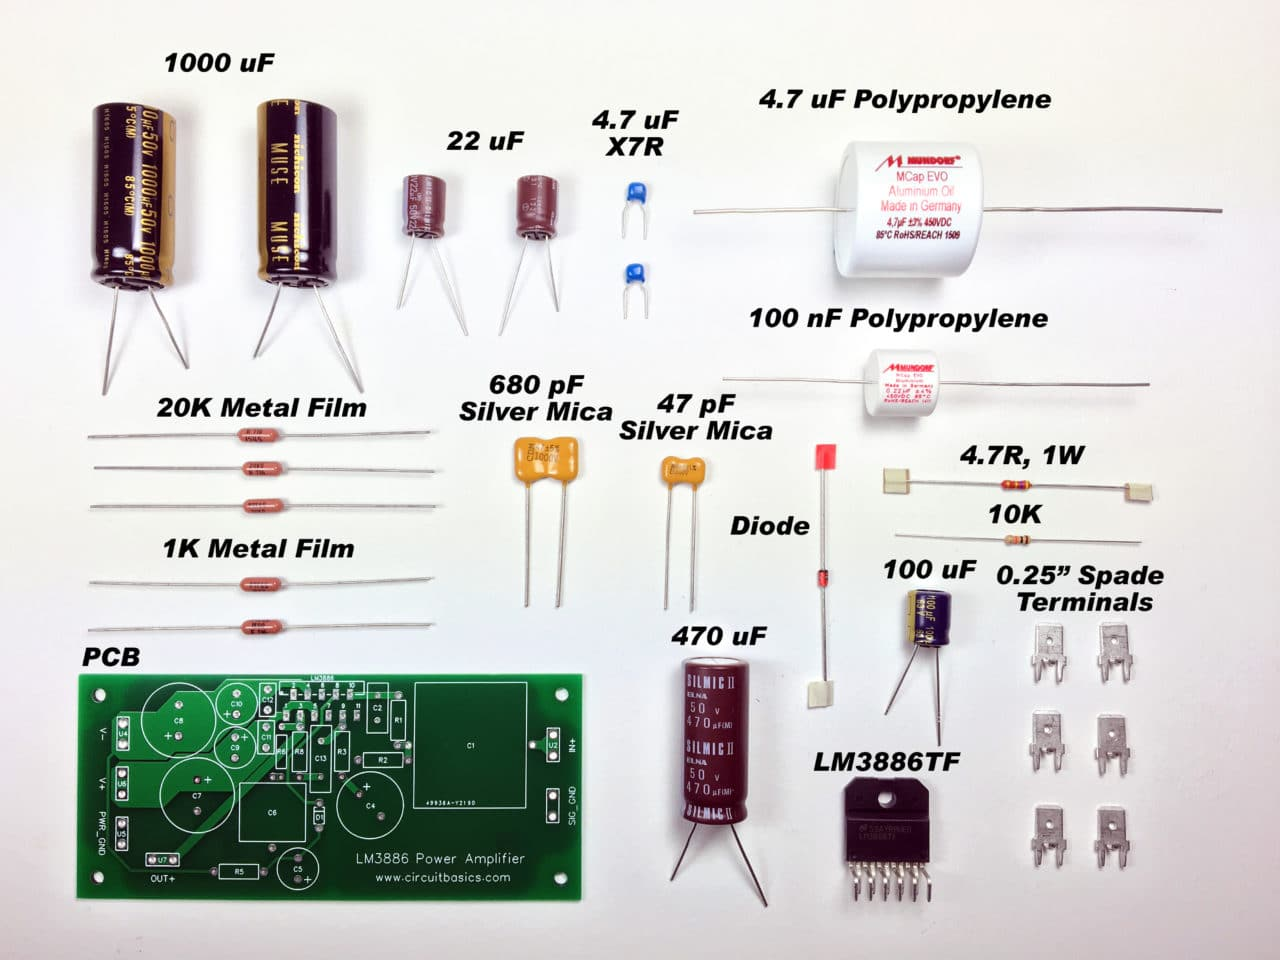 A Complete Guide To Design And Build Hi Fi Lm3886 Amplifier 12 Volt 6 Resistor Wiring Diagram The Total Cost Came About 118 For Both Channels Not Including Chassis Power Supply Parts You Can It Lot Less With Cheaper